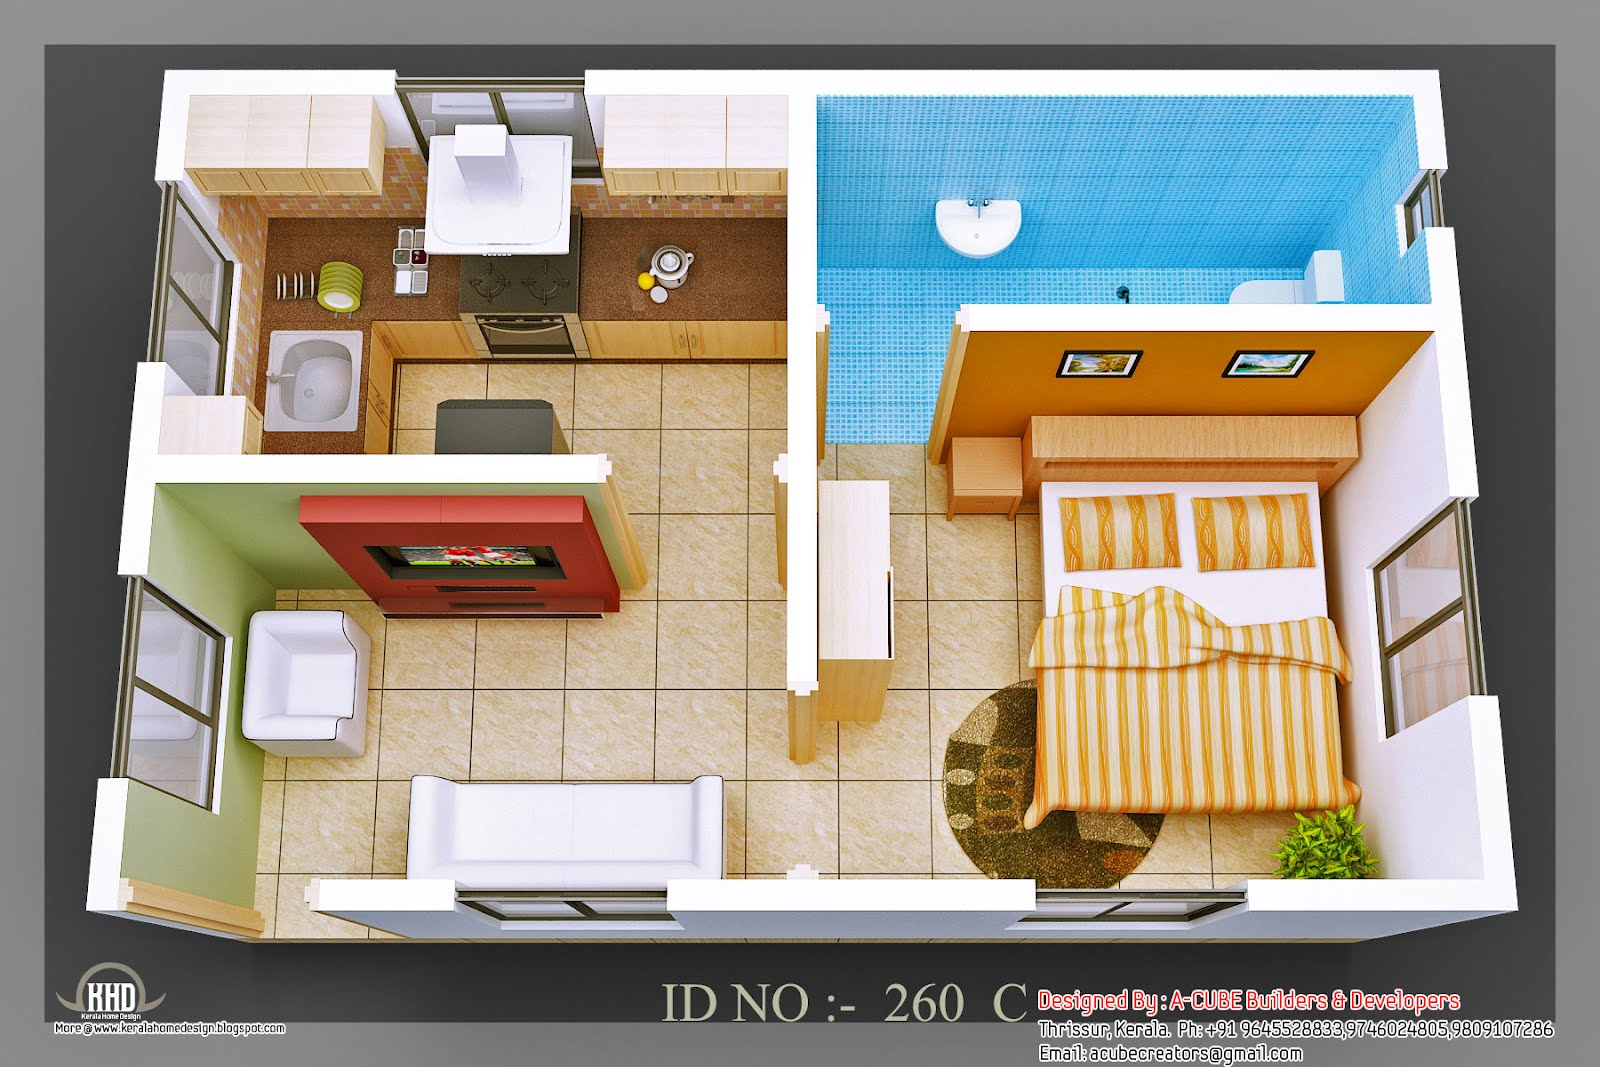 3d Isometric Views Of Small House Plans Kerala Home: house design sites